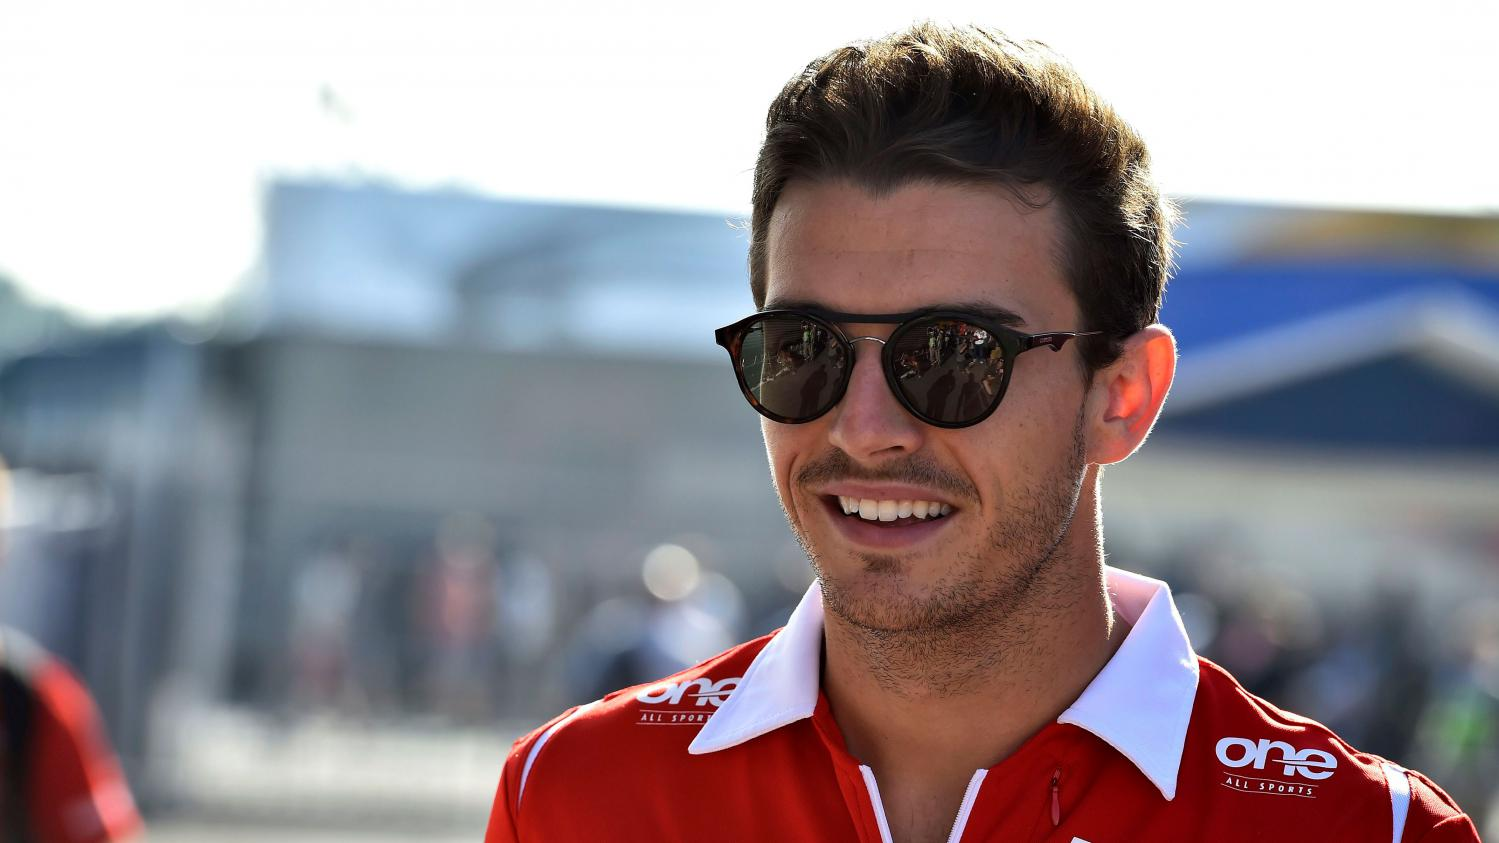 mort de jules bianchi le sport fran ais perd avec lui l un de ses plus grands espoirs hollande. Black Bedroom Furniture Sets. Home Design Ideas